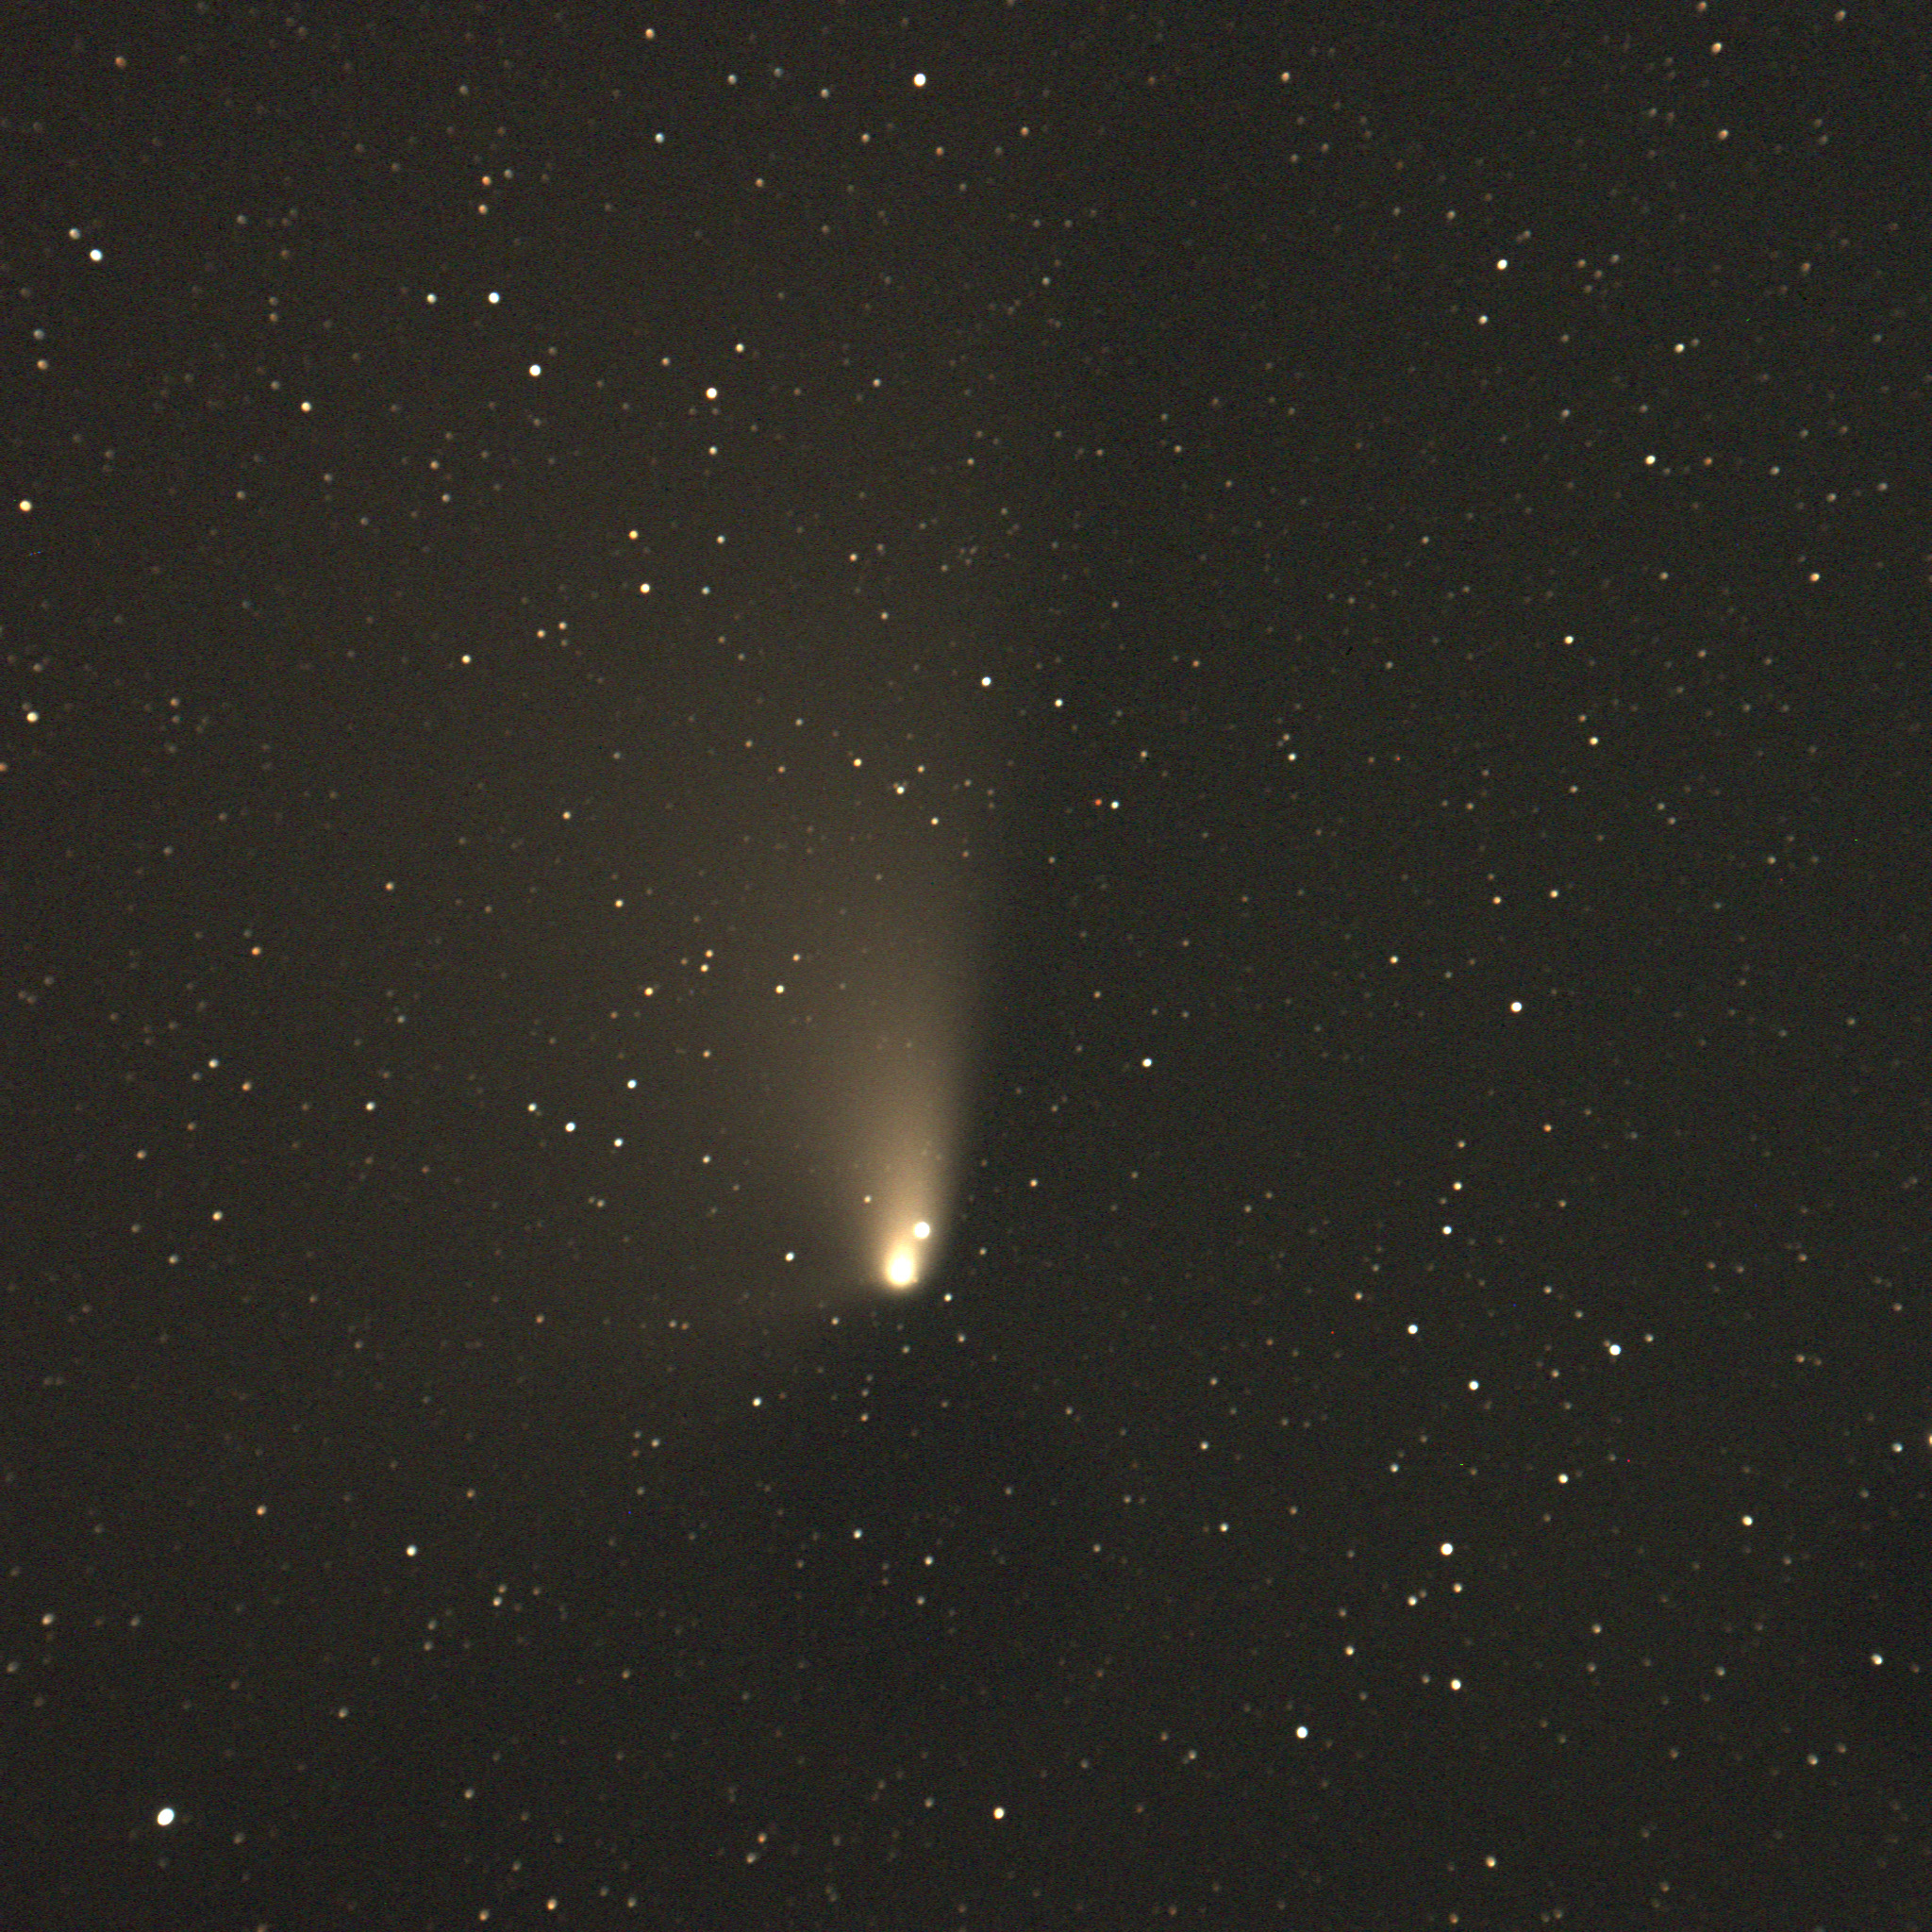 Comet C/2011 L4 (PANSTARRS) shot before dawn on 4/7/13, five-minute exposure